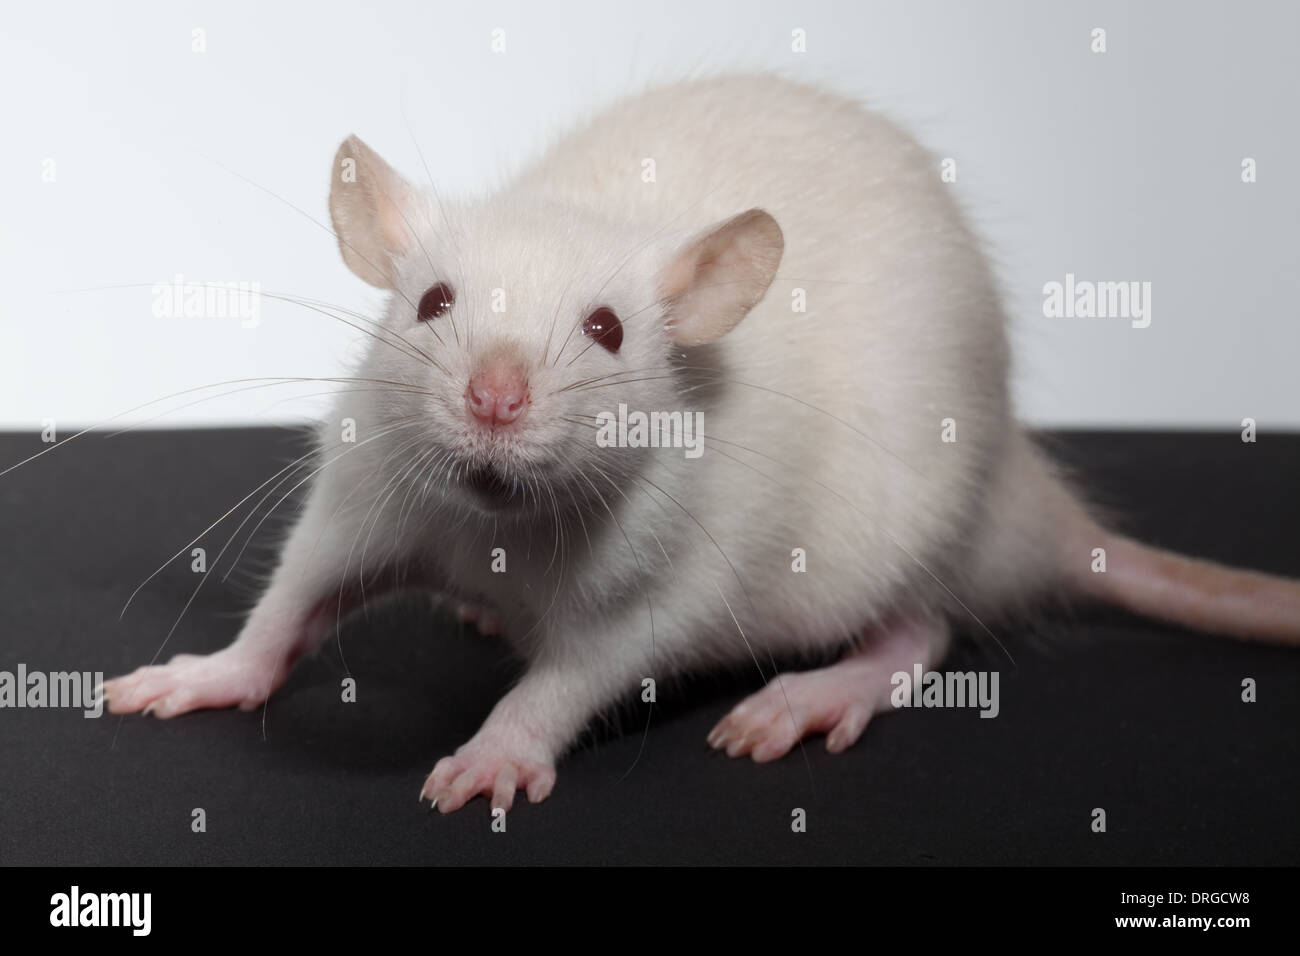 White, albino, Domestic Rat (Rattus norvegicus). Lacking melanin pigmentation, thus eyes for example appear pink or red. - Stock Image